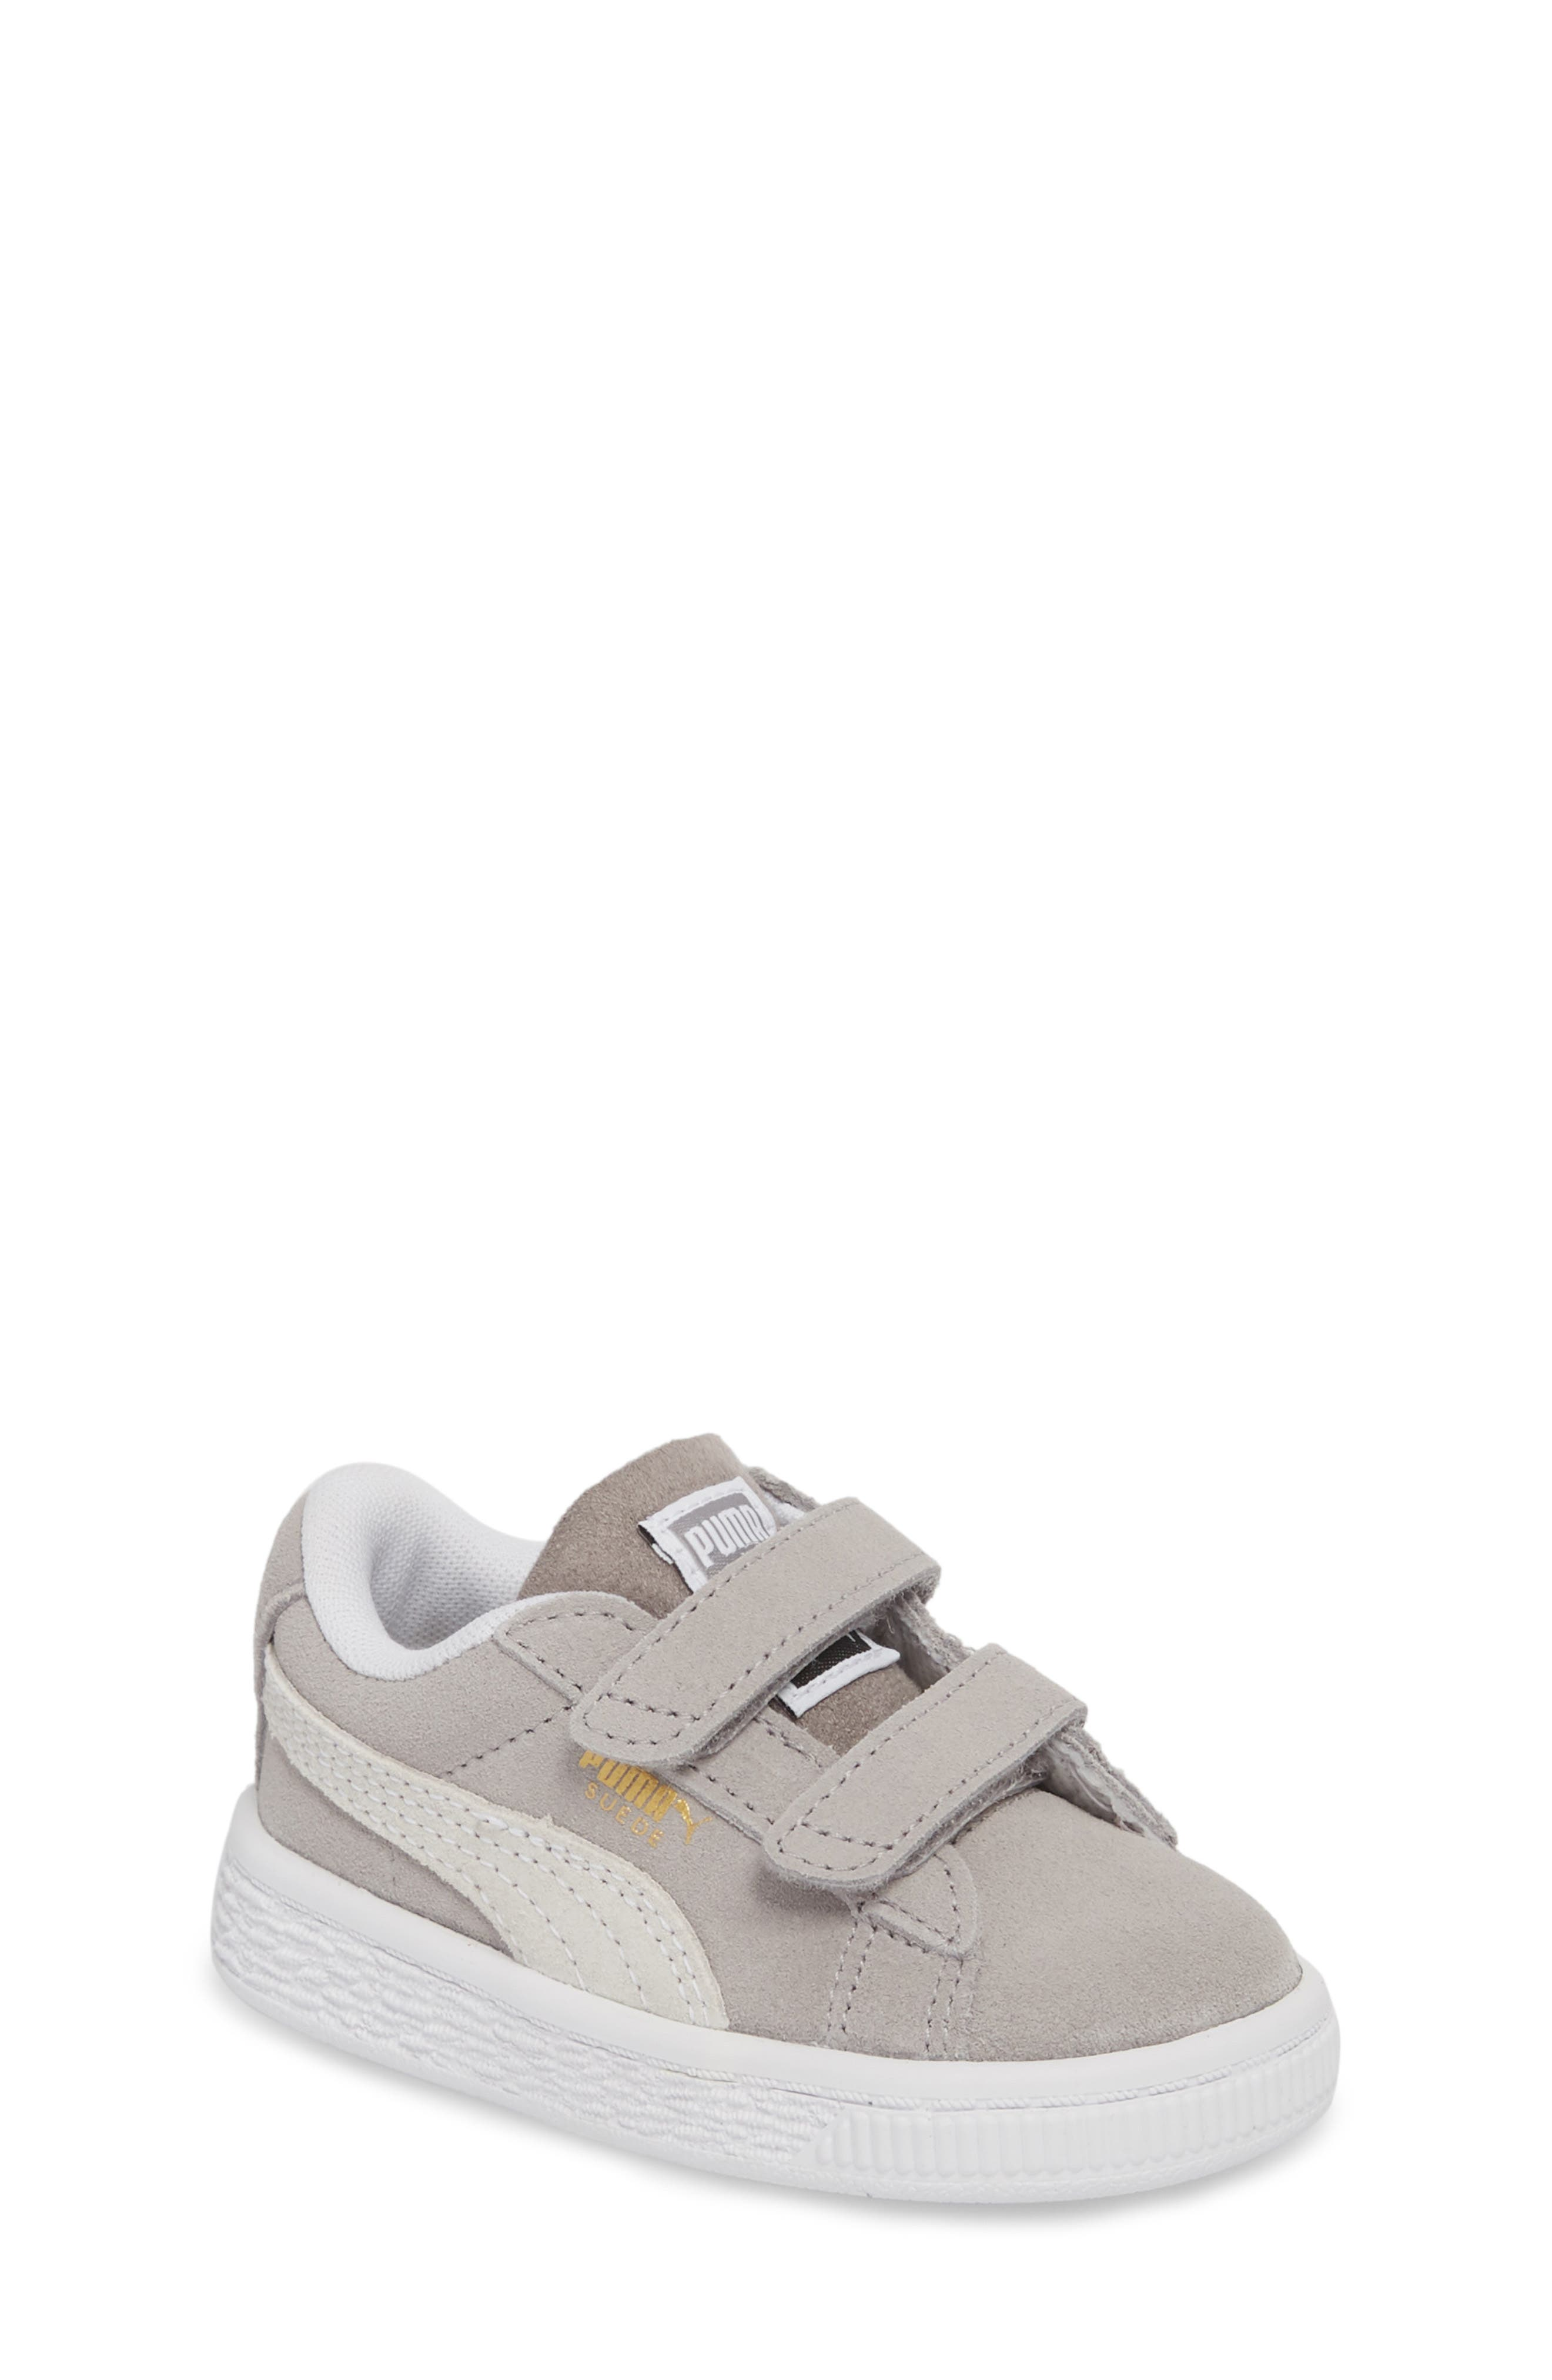 puma shoes kids velcro watches that are waterproof